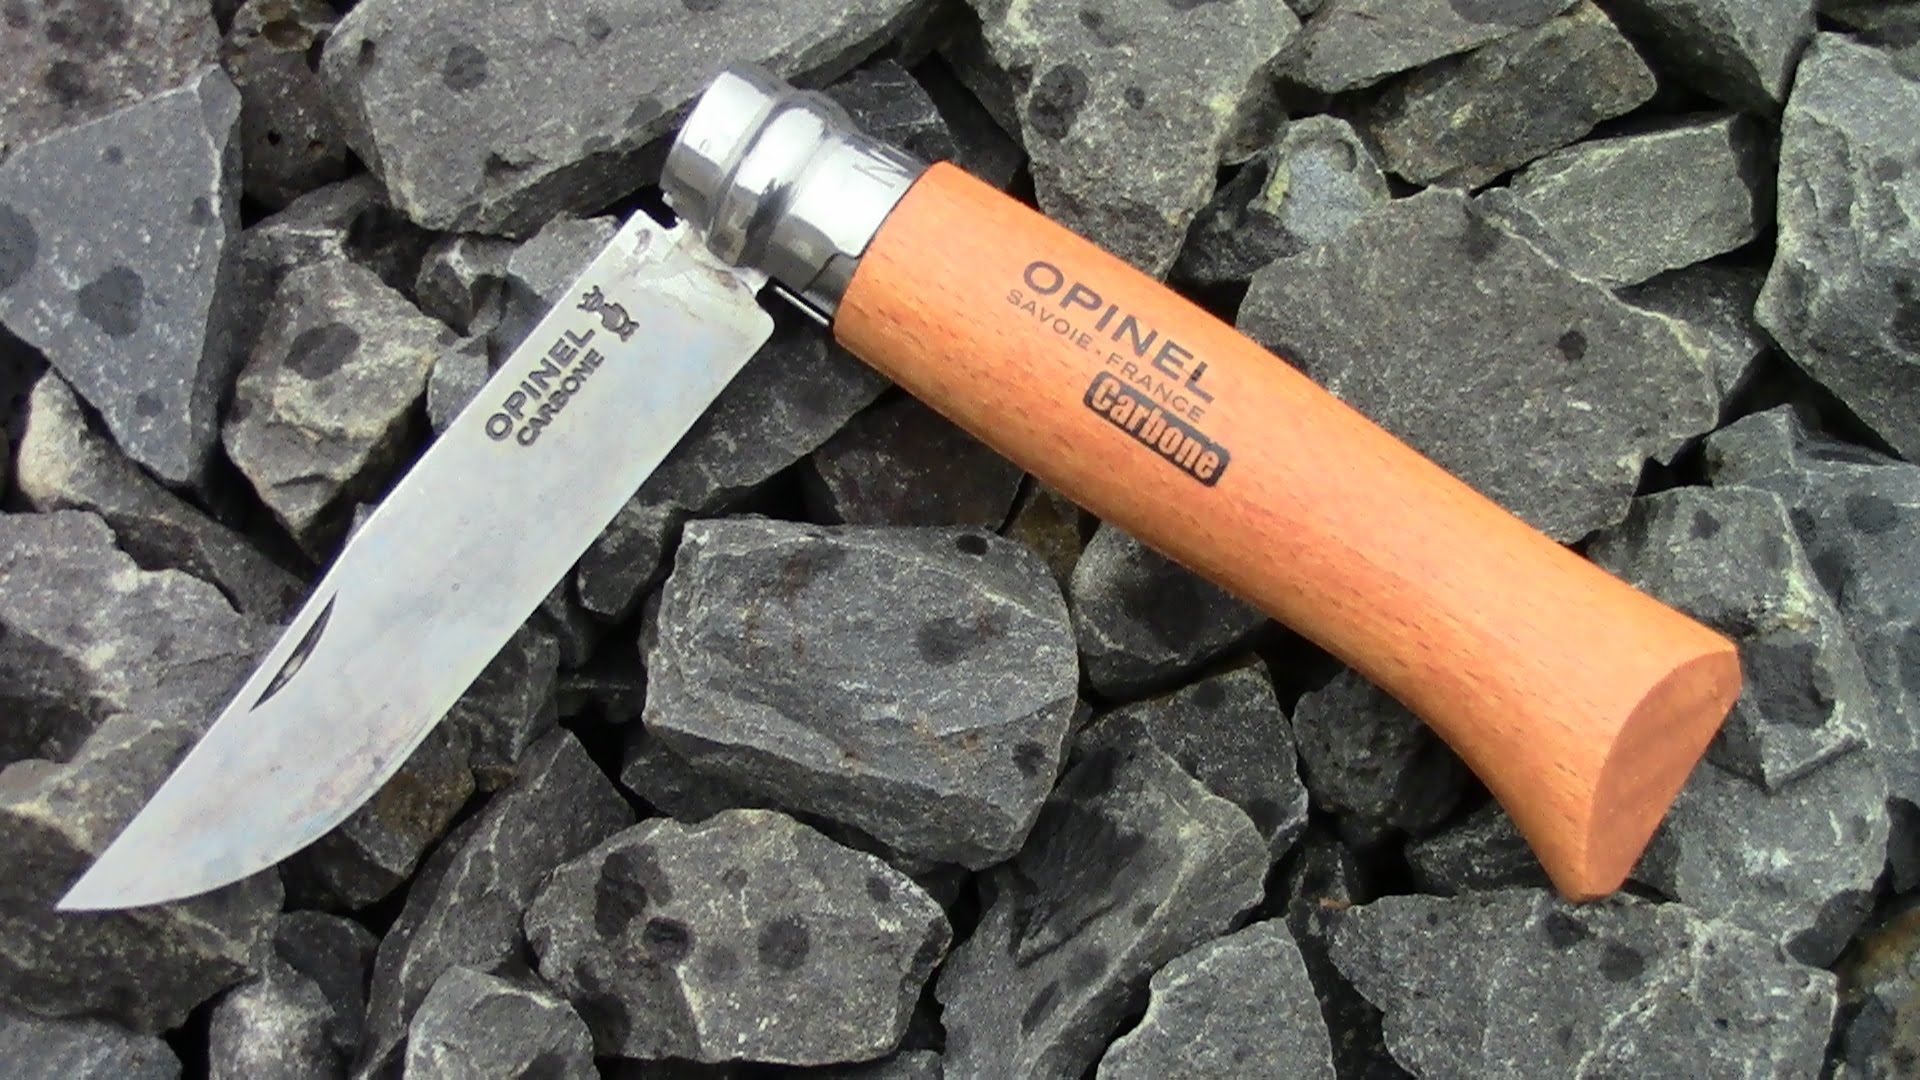 Opinel #8